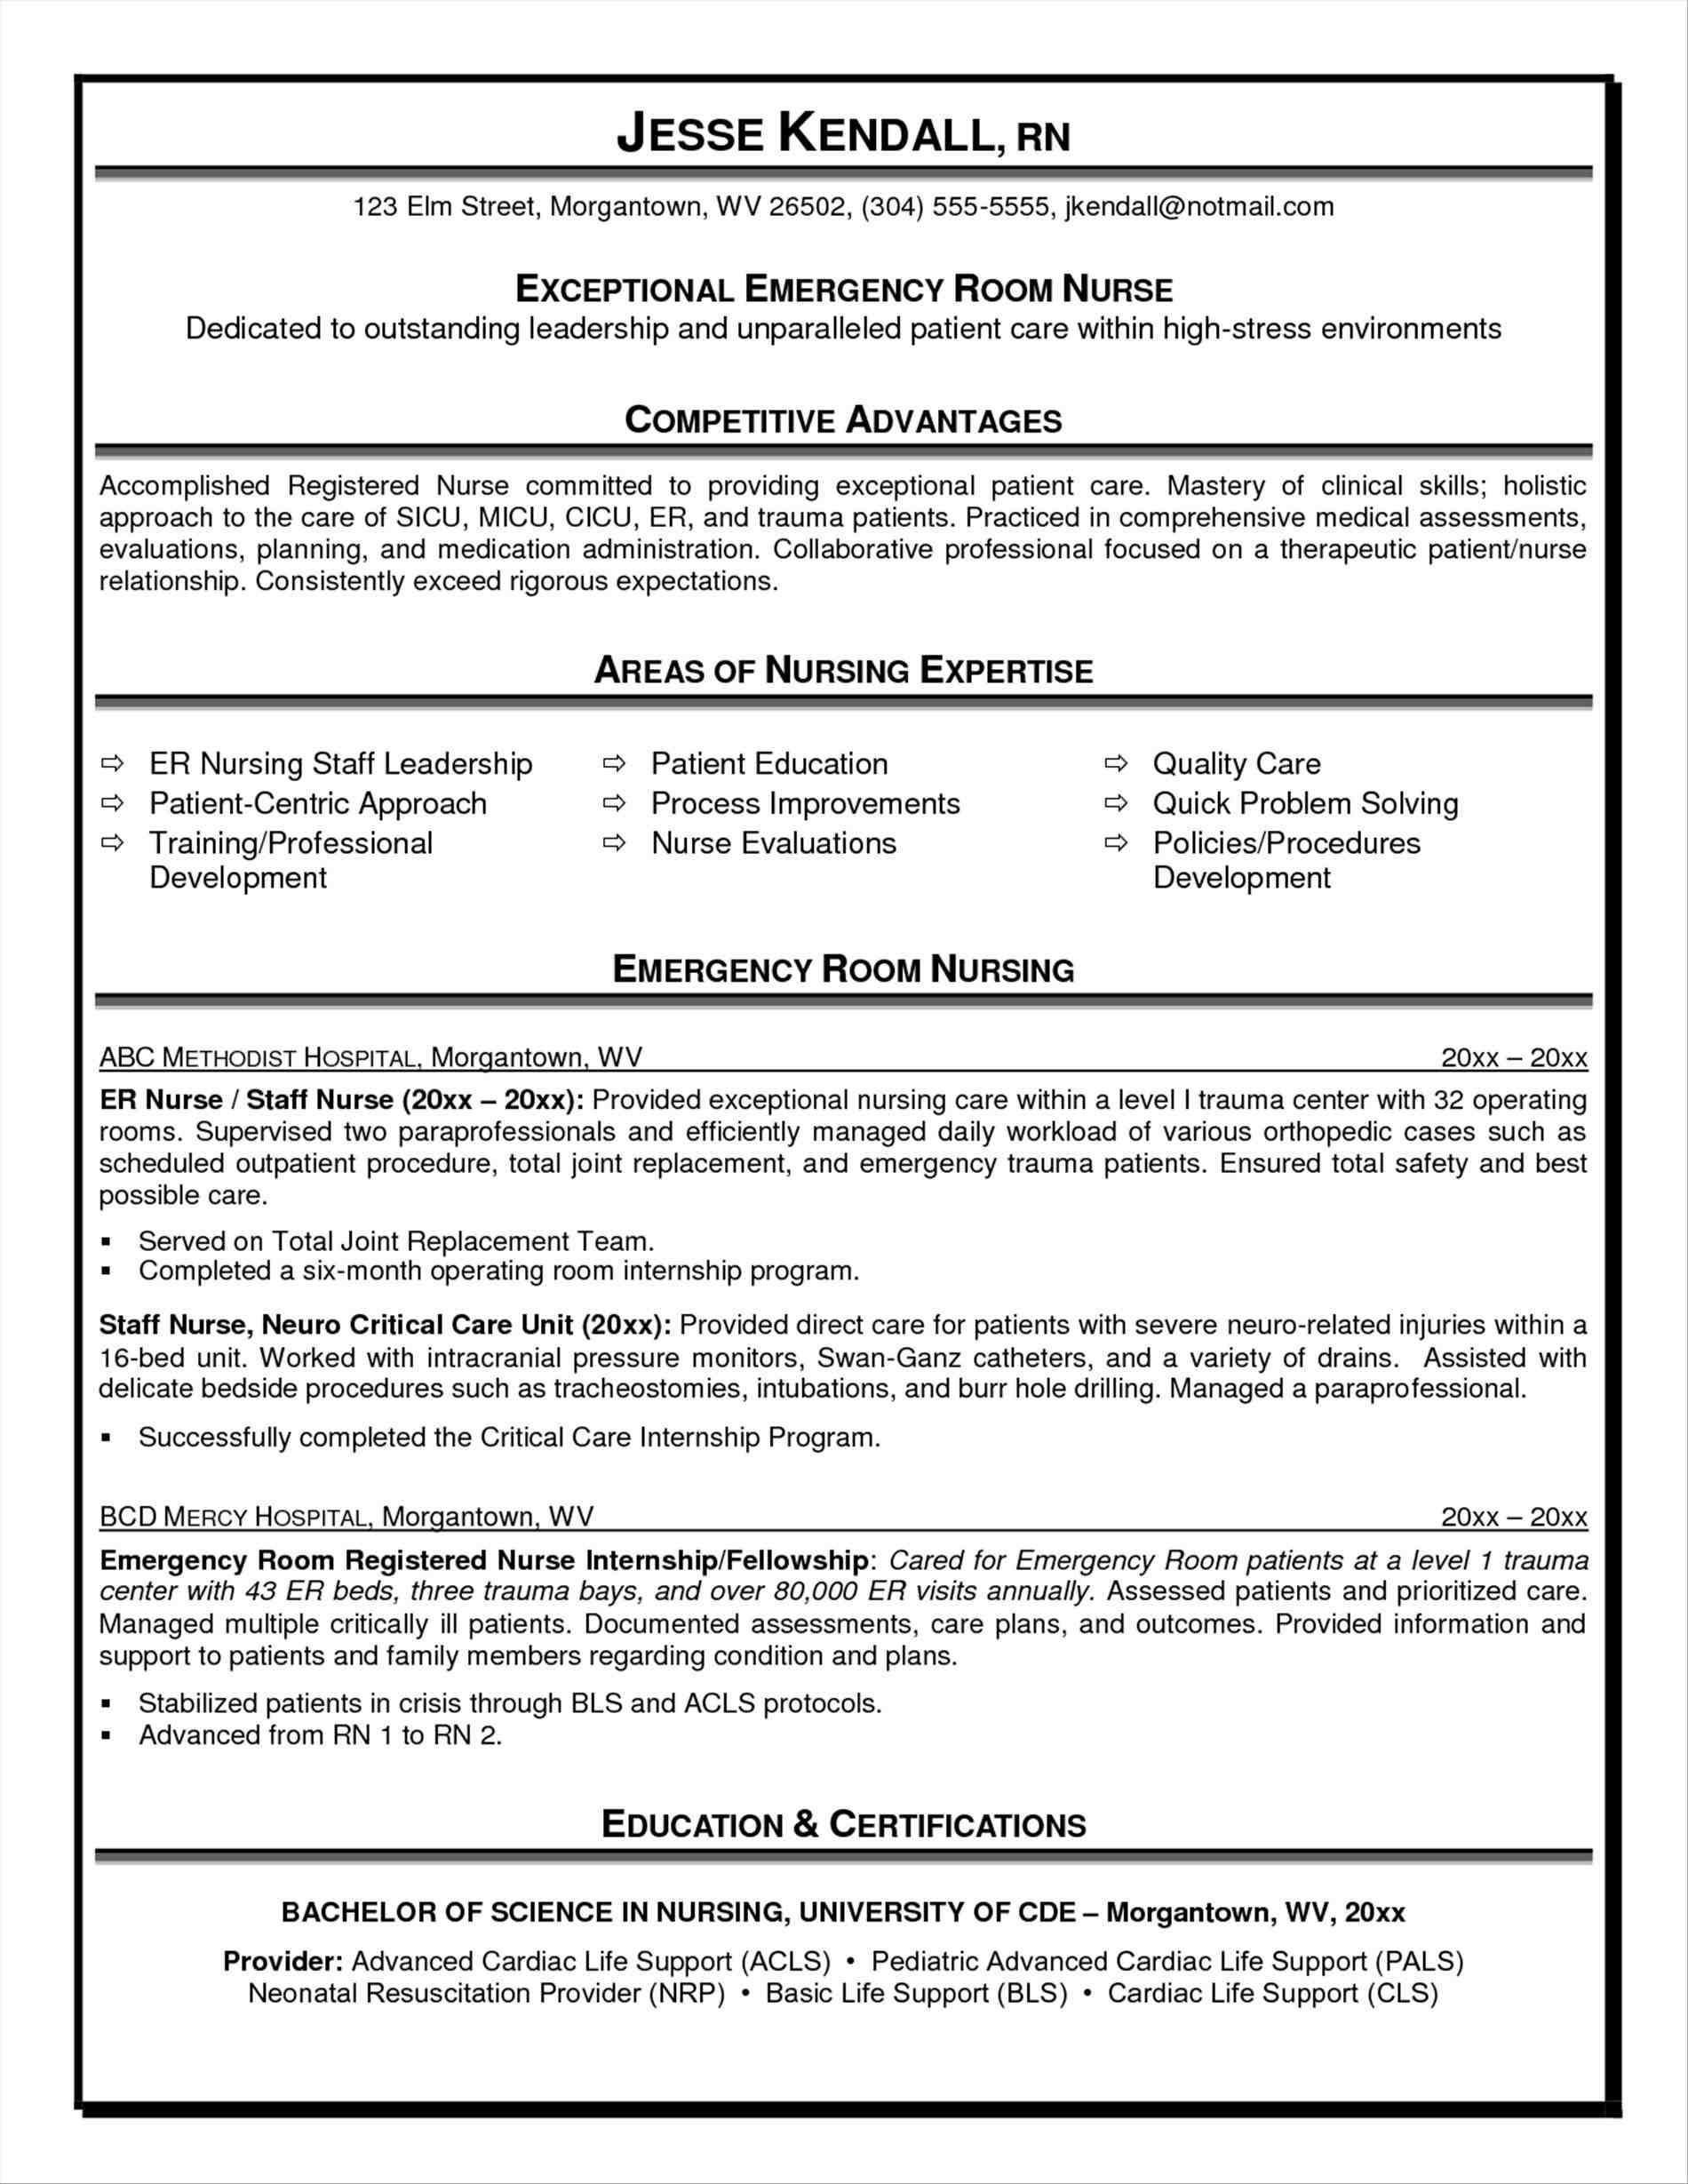 Nursing Documentation Templates Google Search Nursing